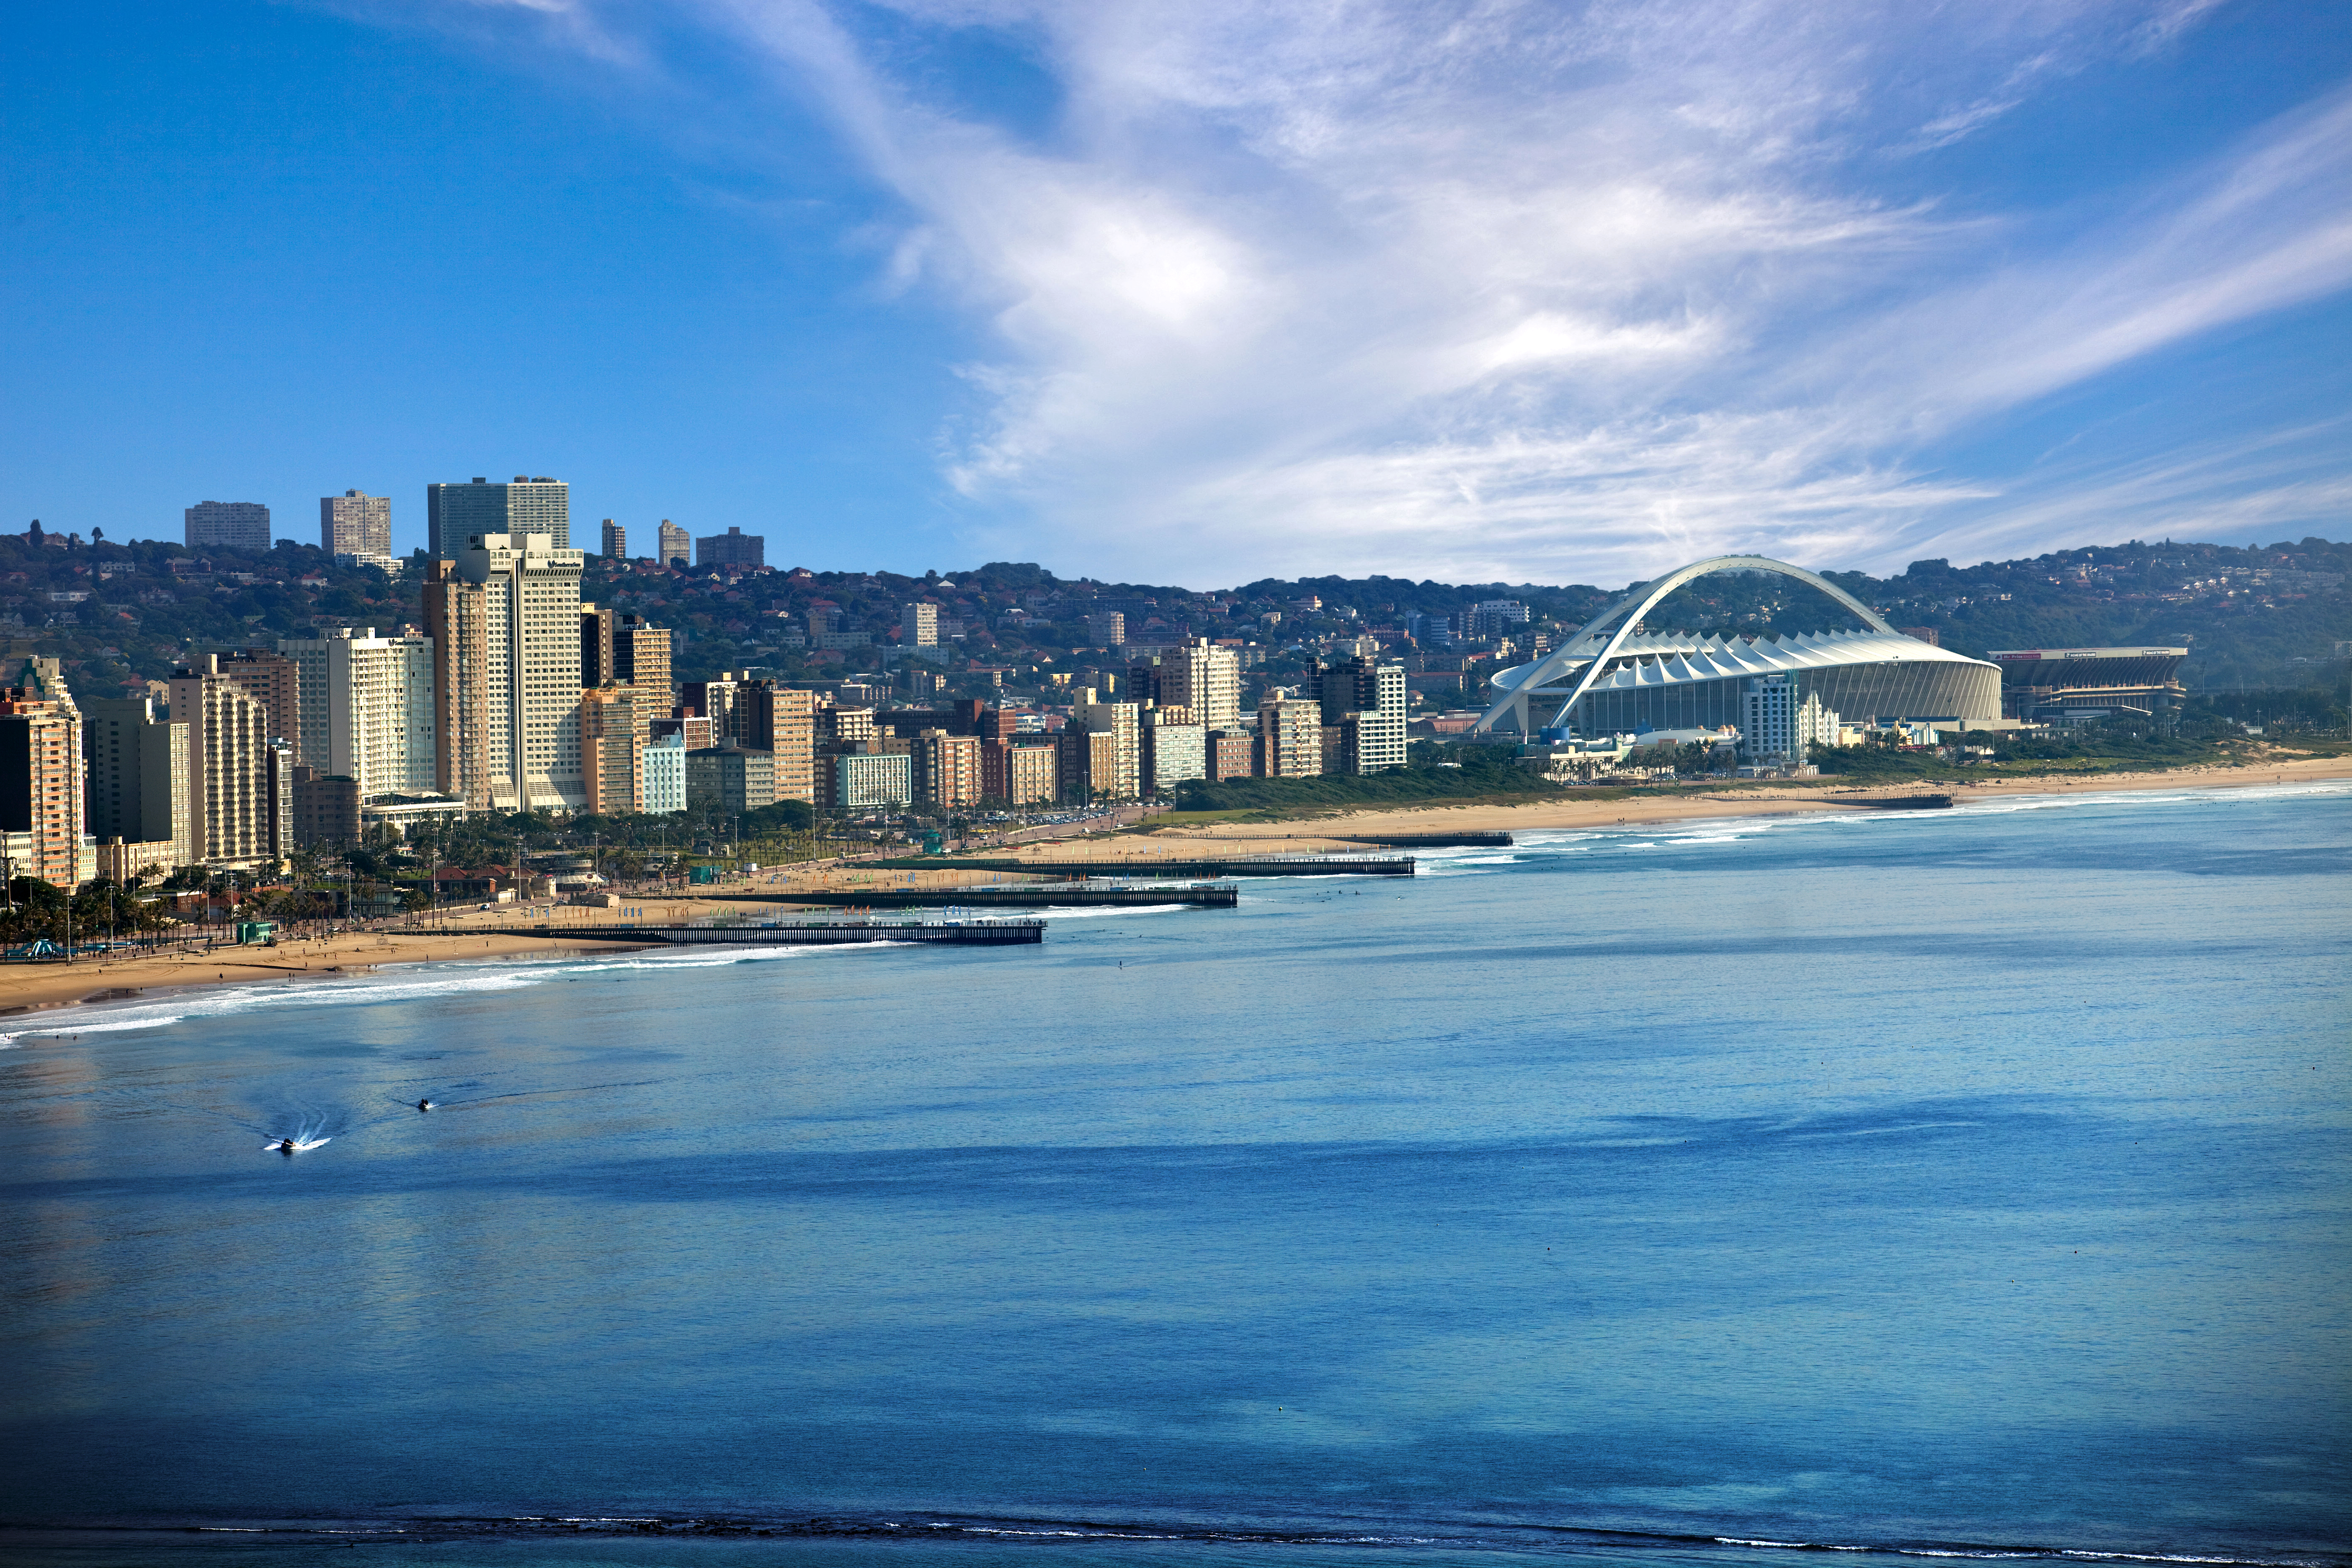 Durban City South Africa Hd Wallpapers And Photos Vivowallpaparcom